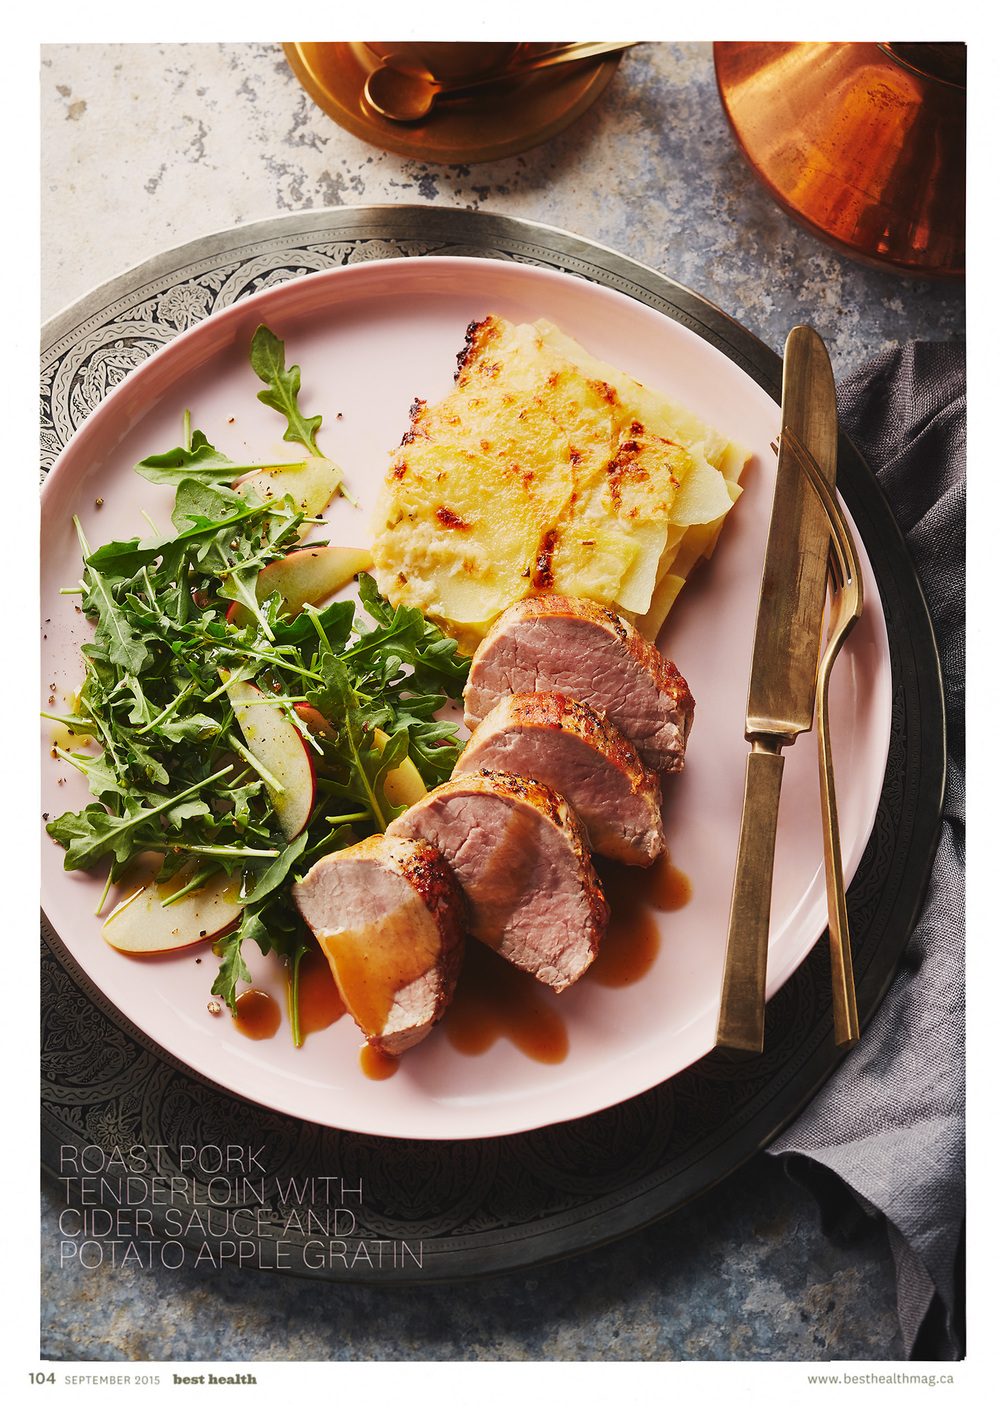 Roast pork tenderloin with cider sauce and potato apple gratin